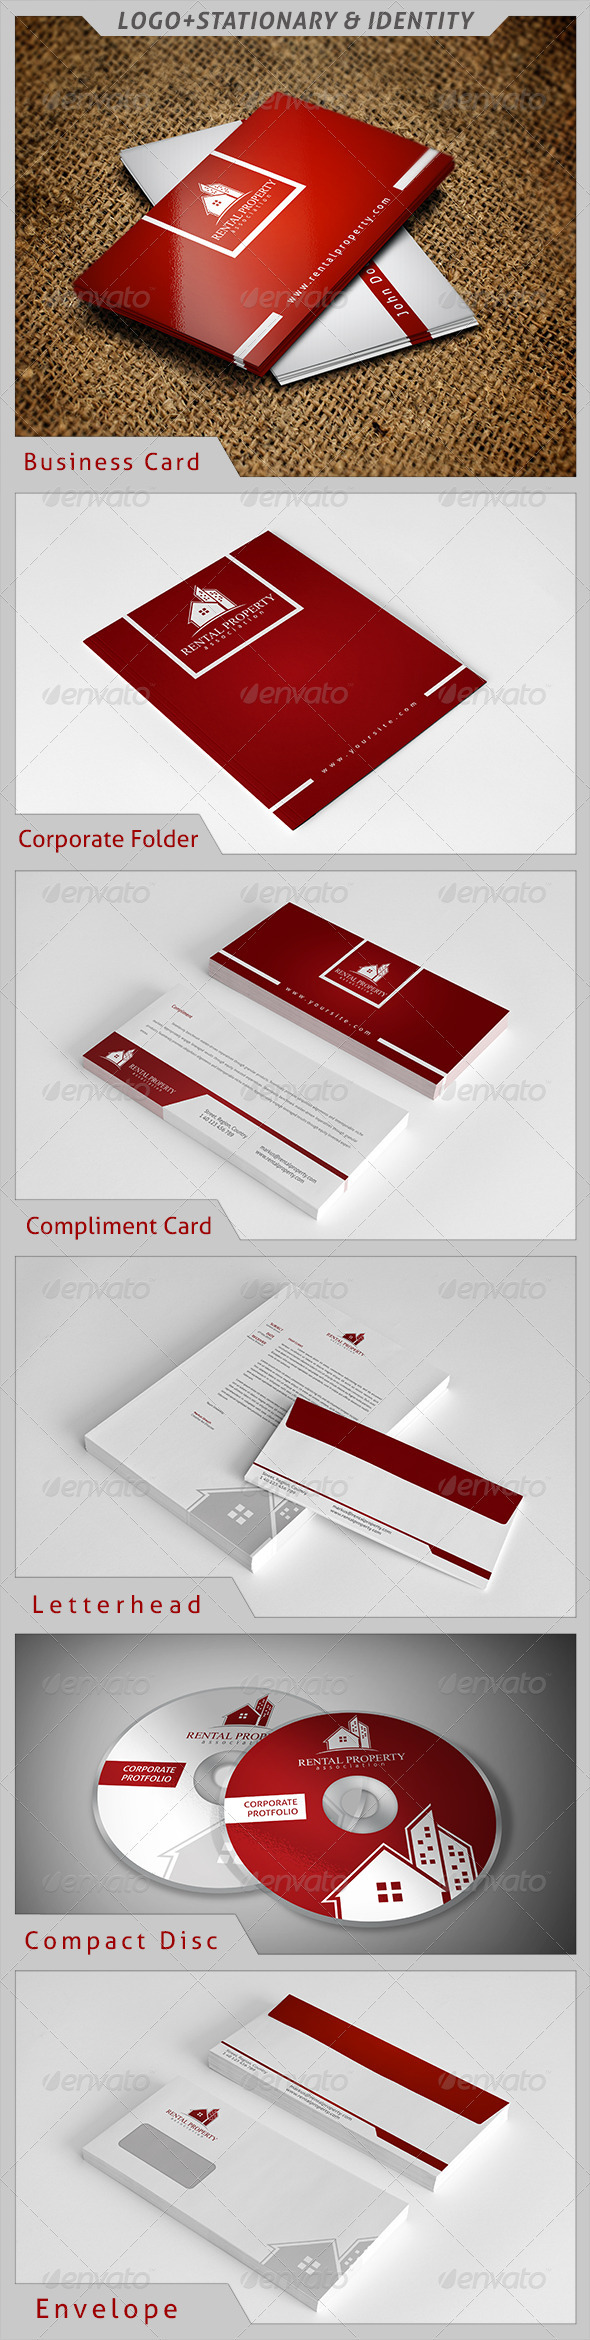 Rental Property Corporate Identity - Stationery Print Templates